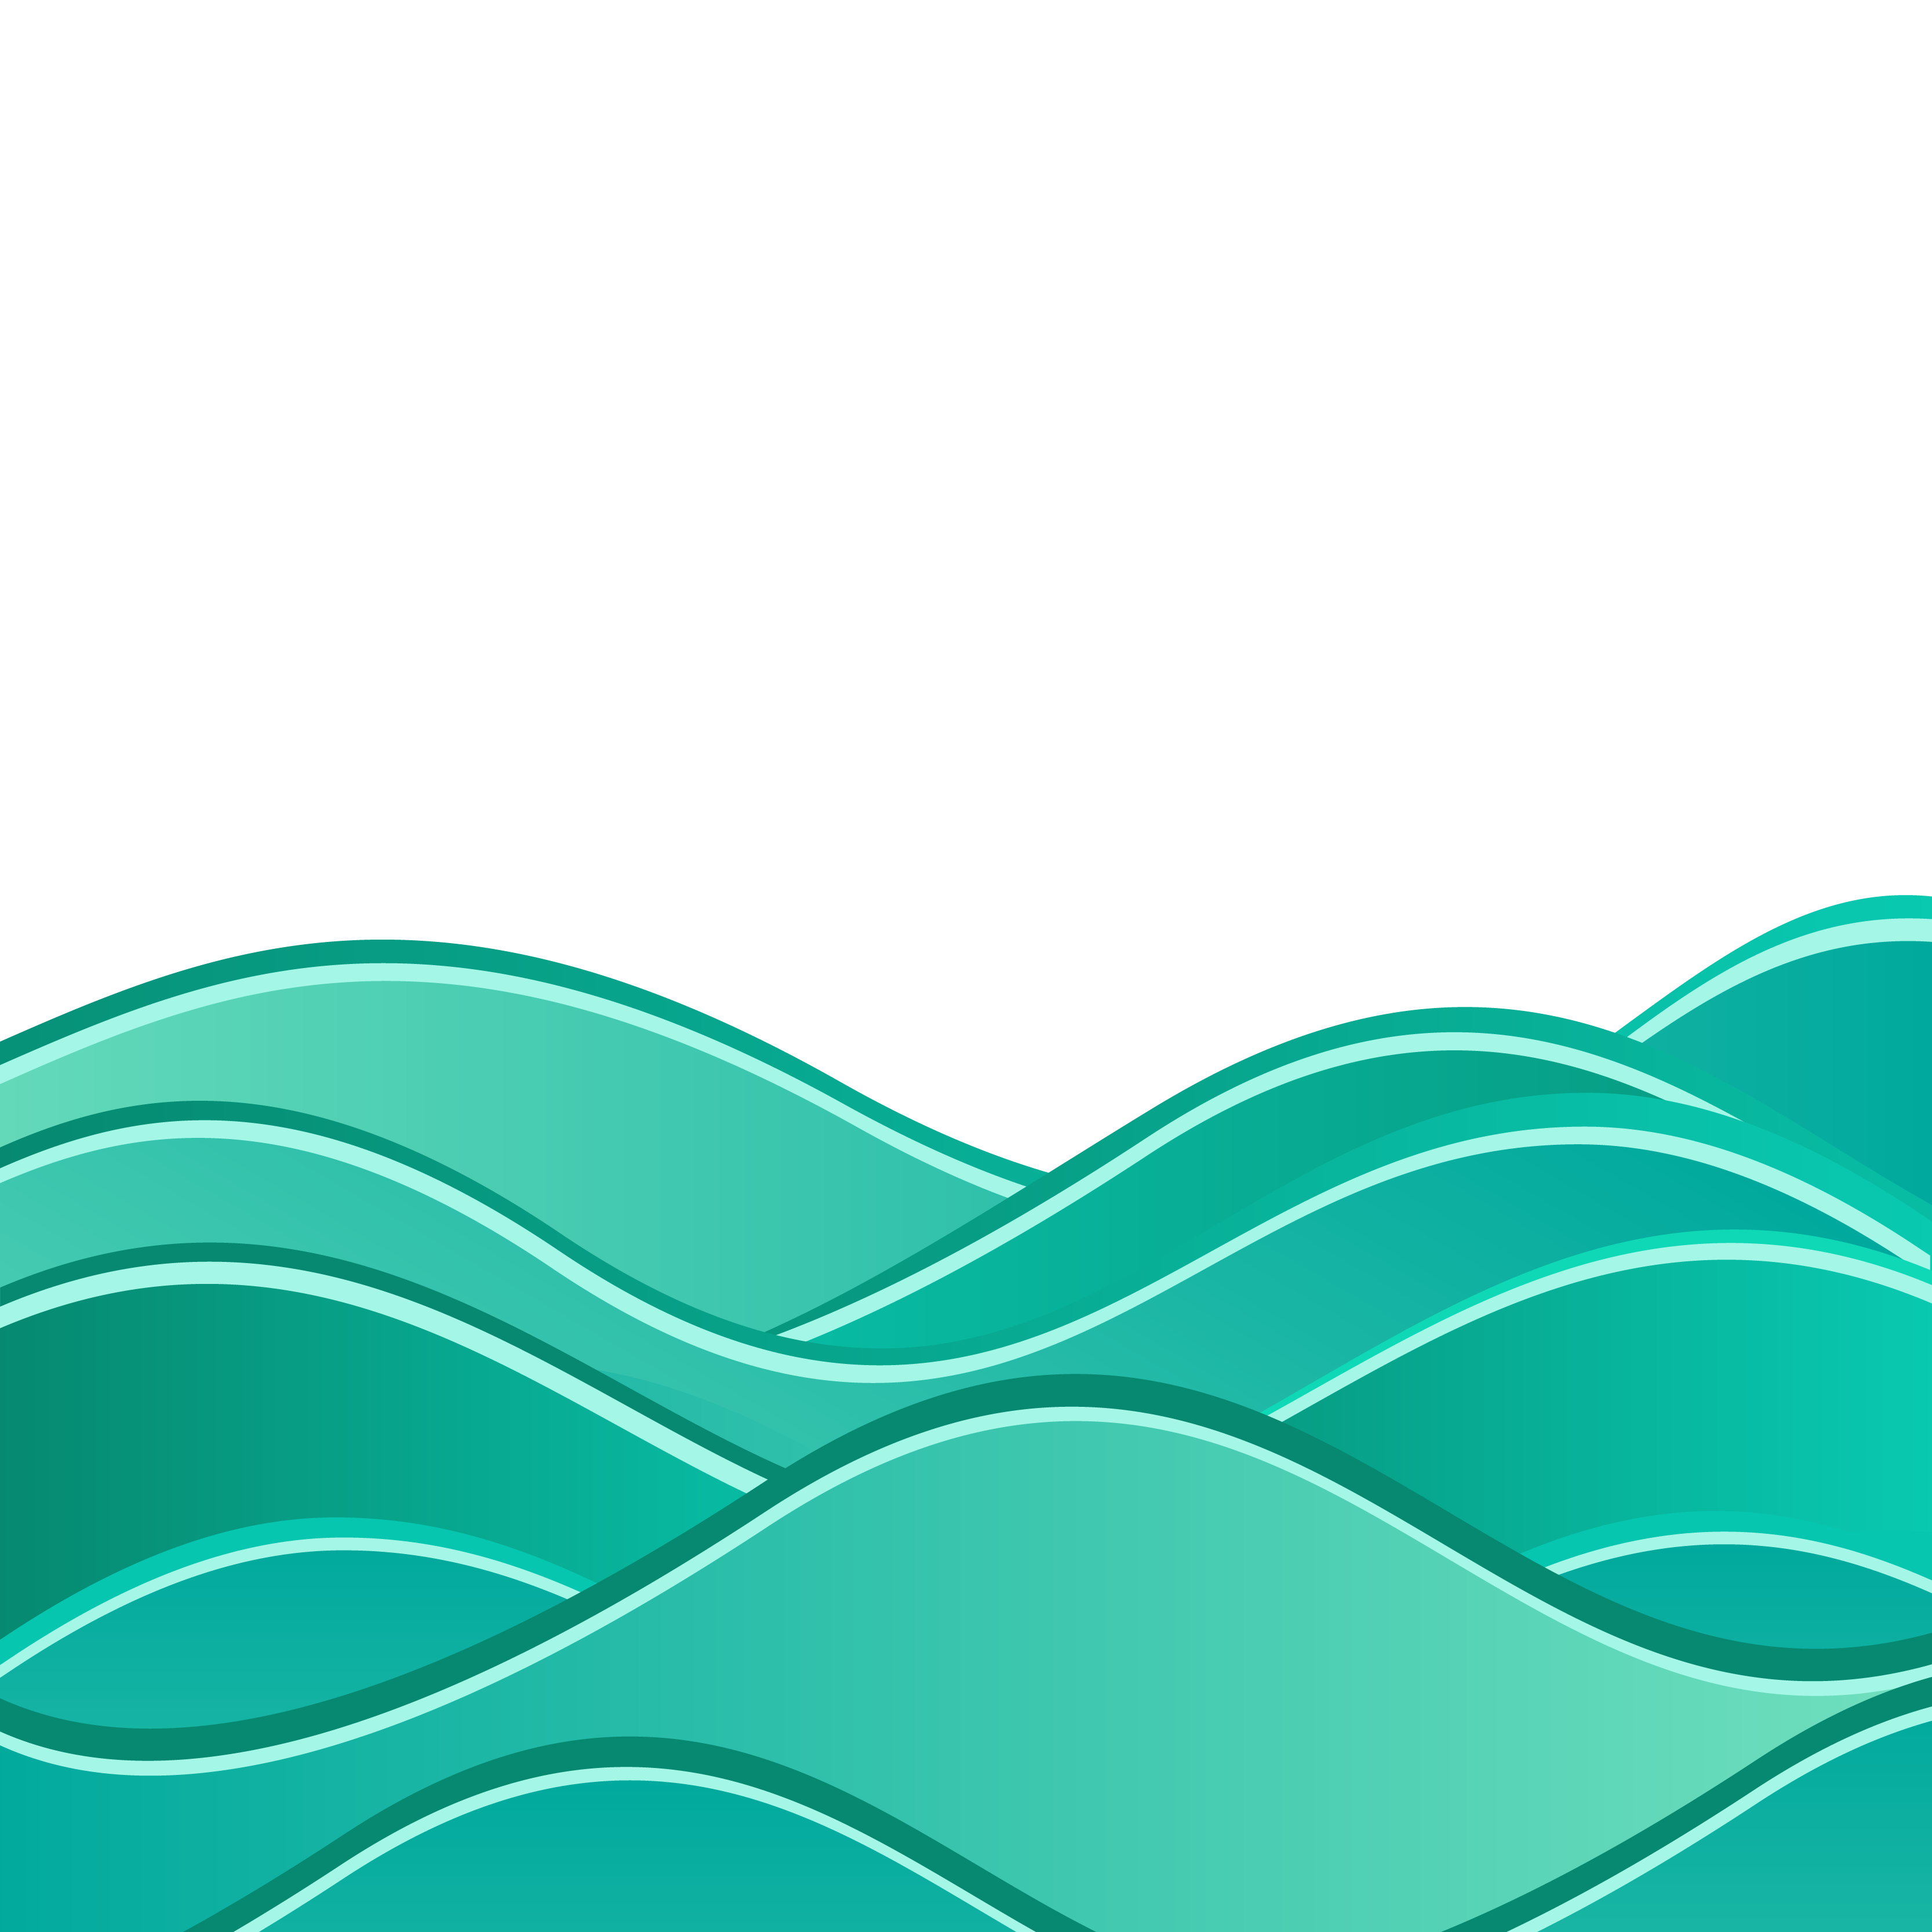 Green wave vector png. Wind euclidean sea background